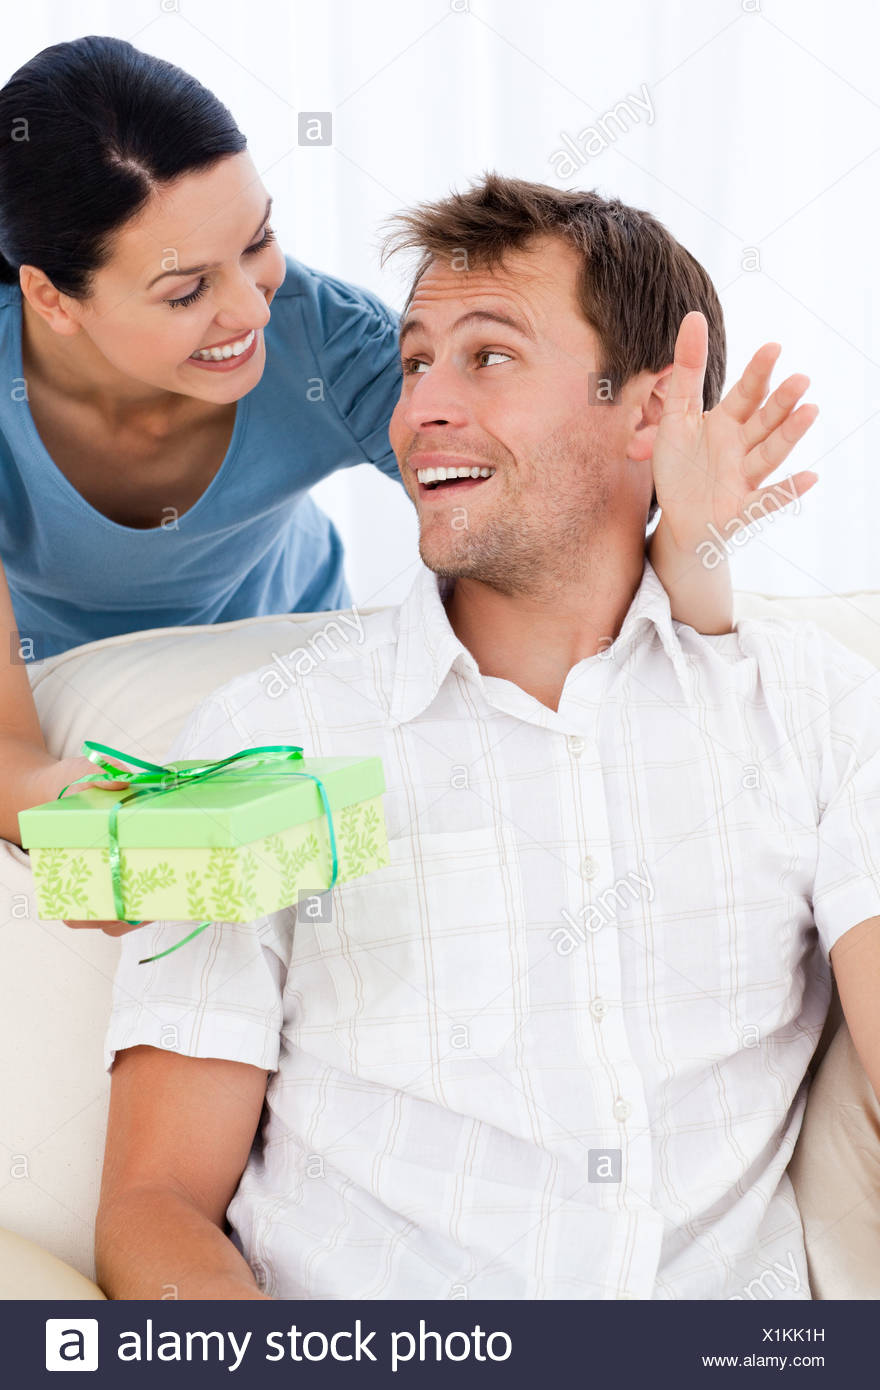 Amazed man receiving a present from his girlfriend - Stock Image